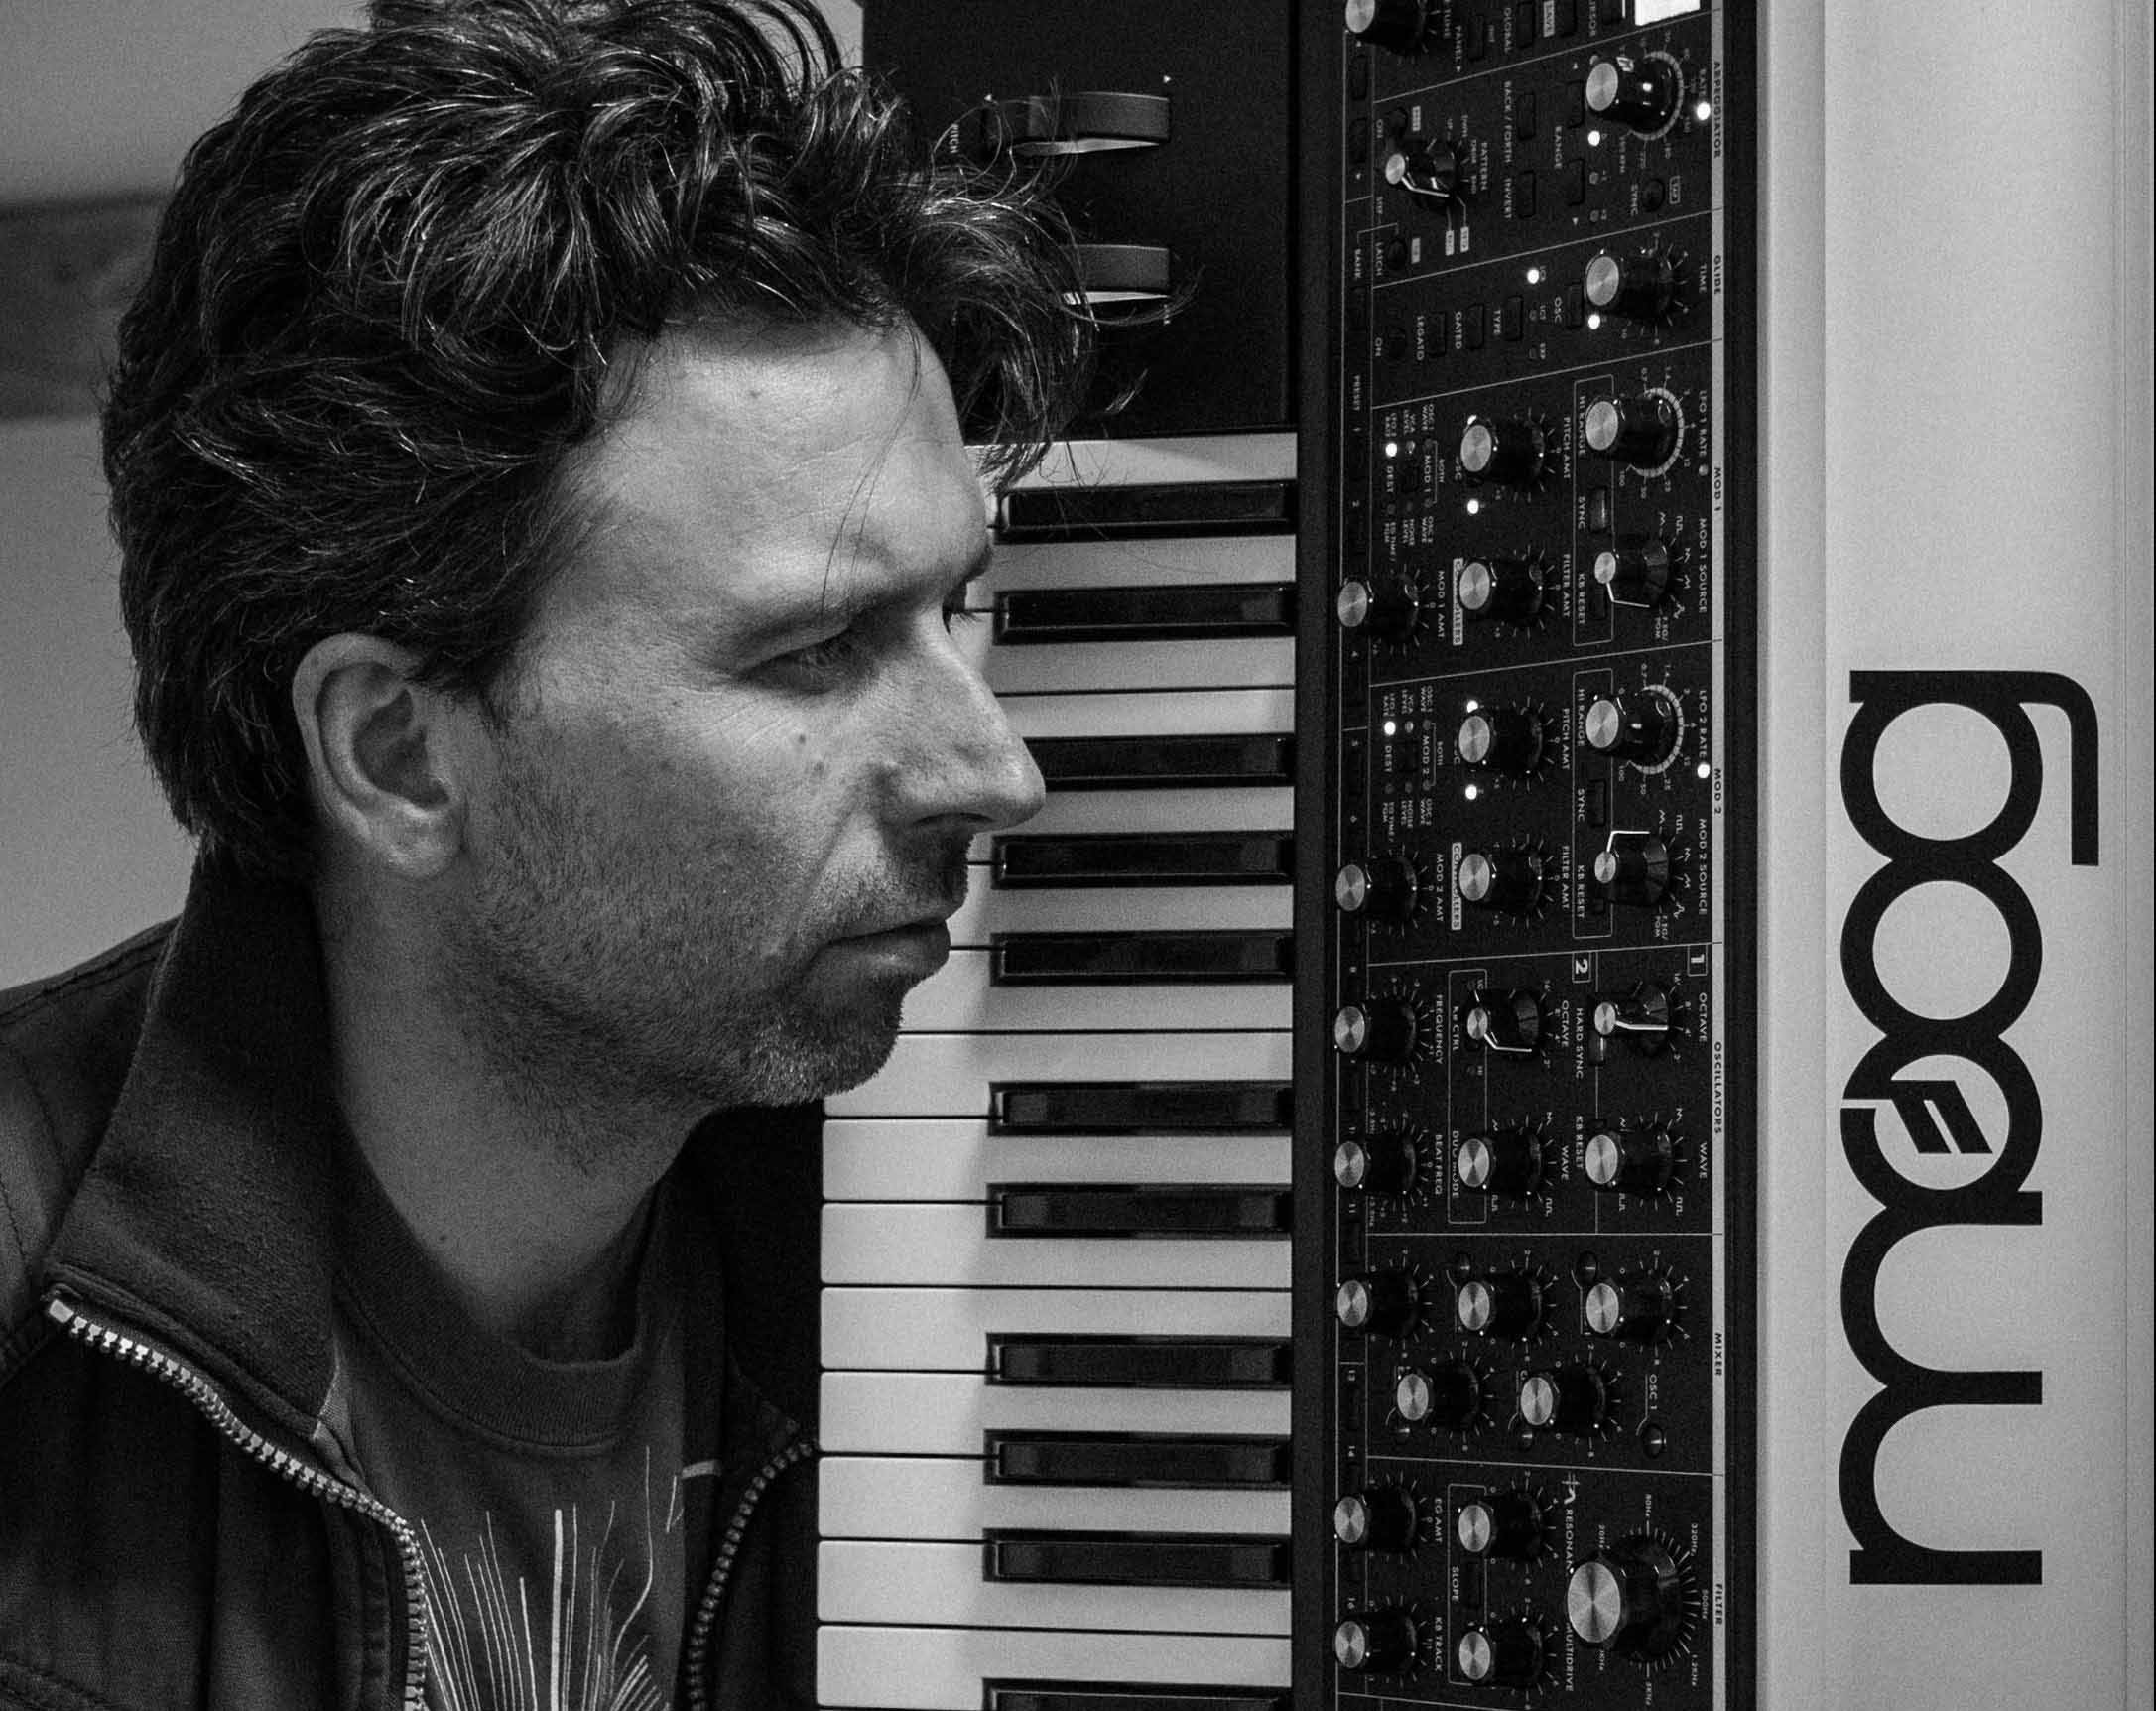 The Art of Moog will play Bach, completely live, on multiple synthesizers